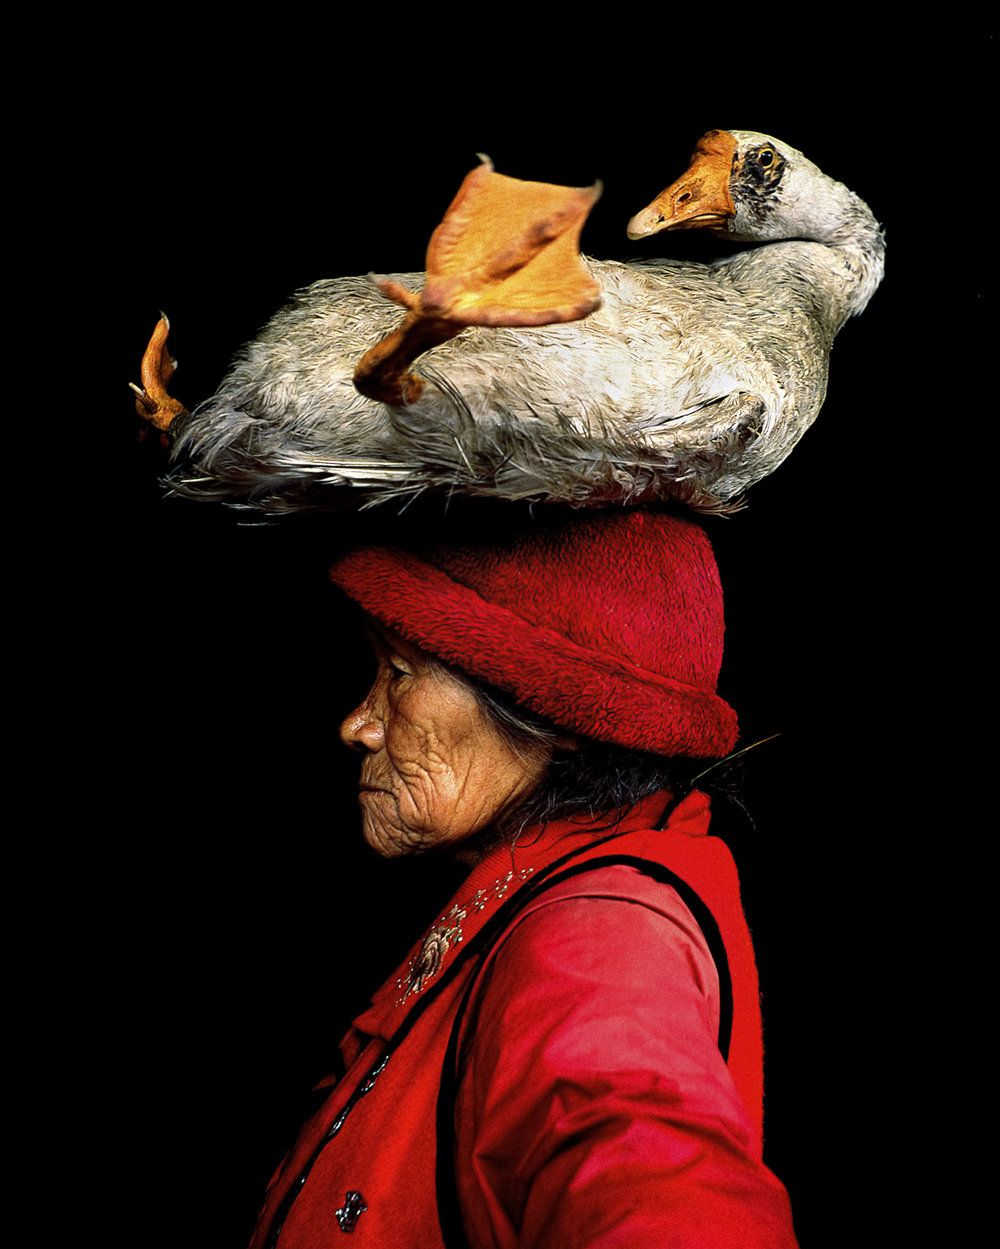 Lady with the Goose, Photo by Cristina Mittermeier (Yunnan Province, China)